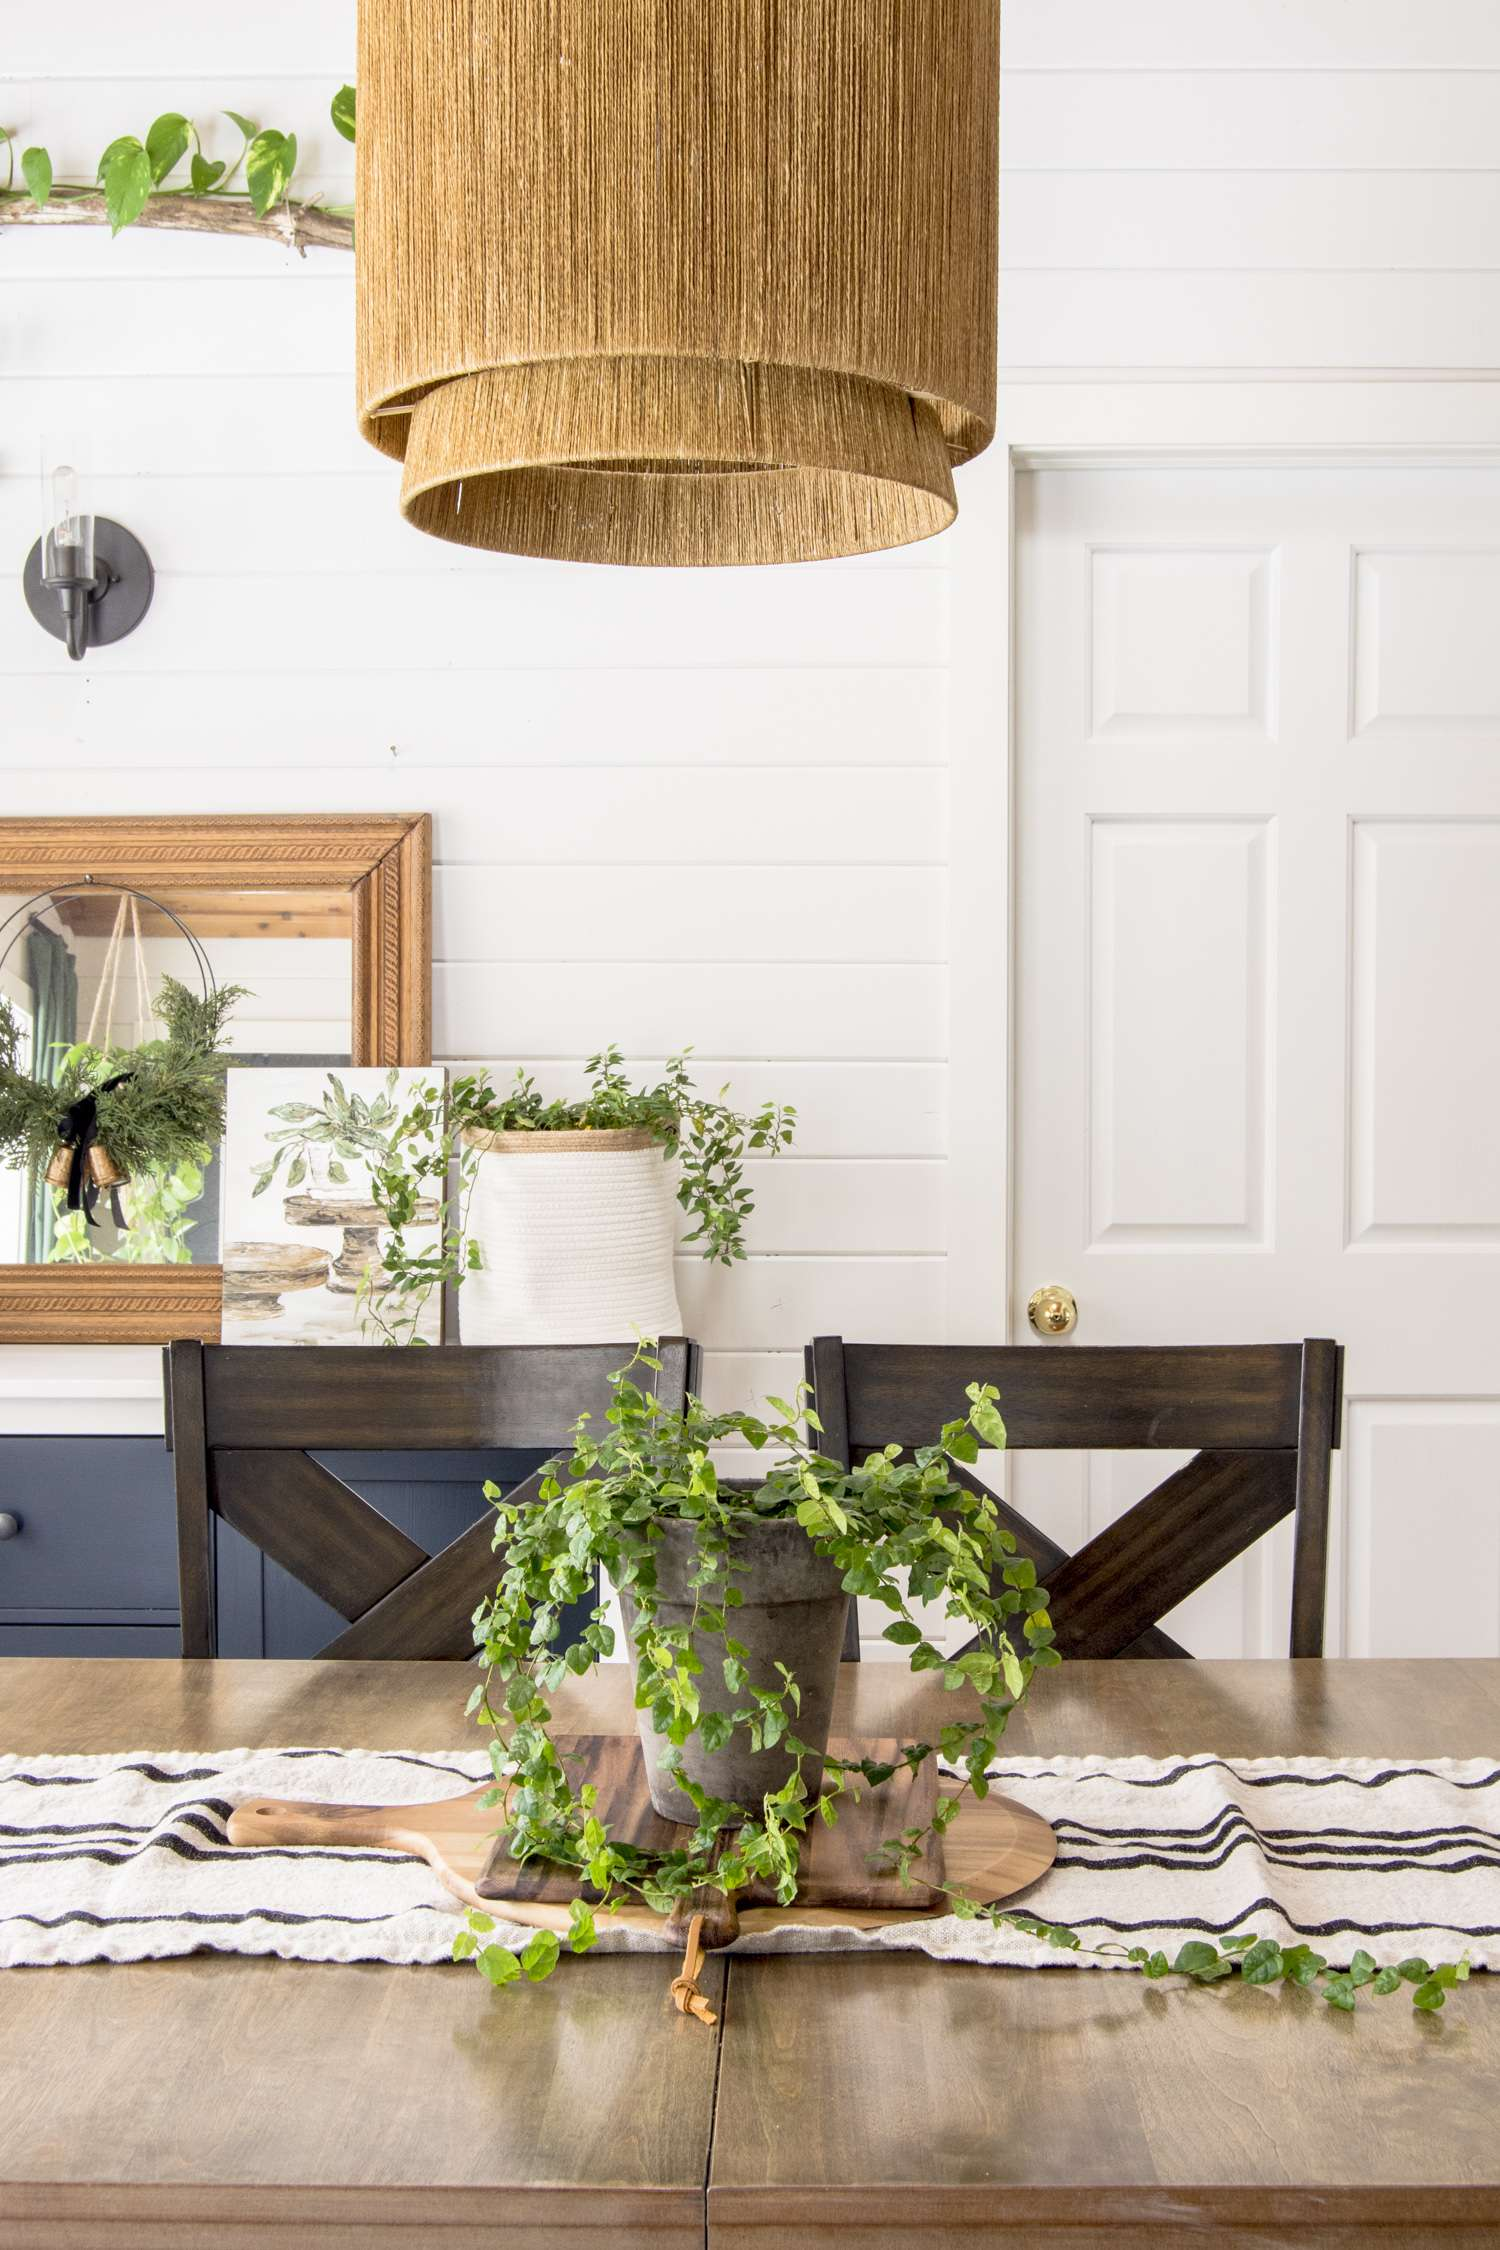 How to display vining indoor plants.